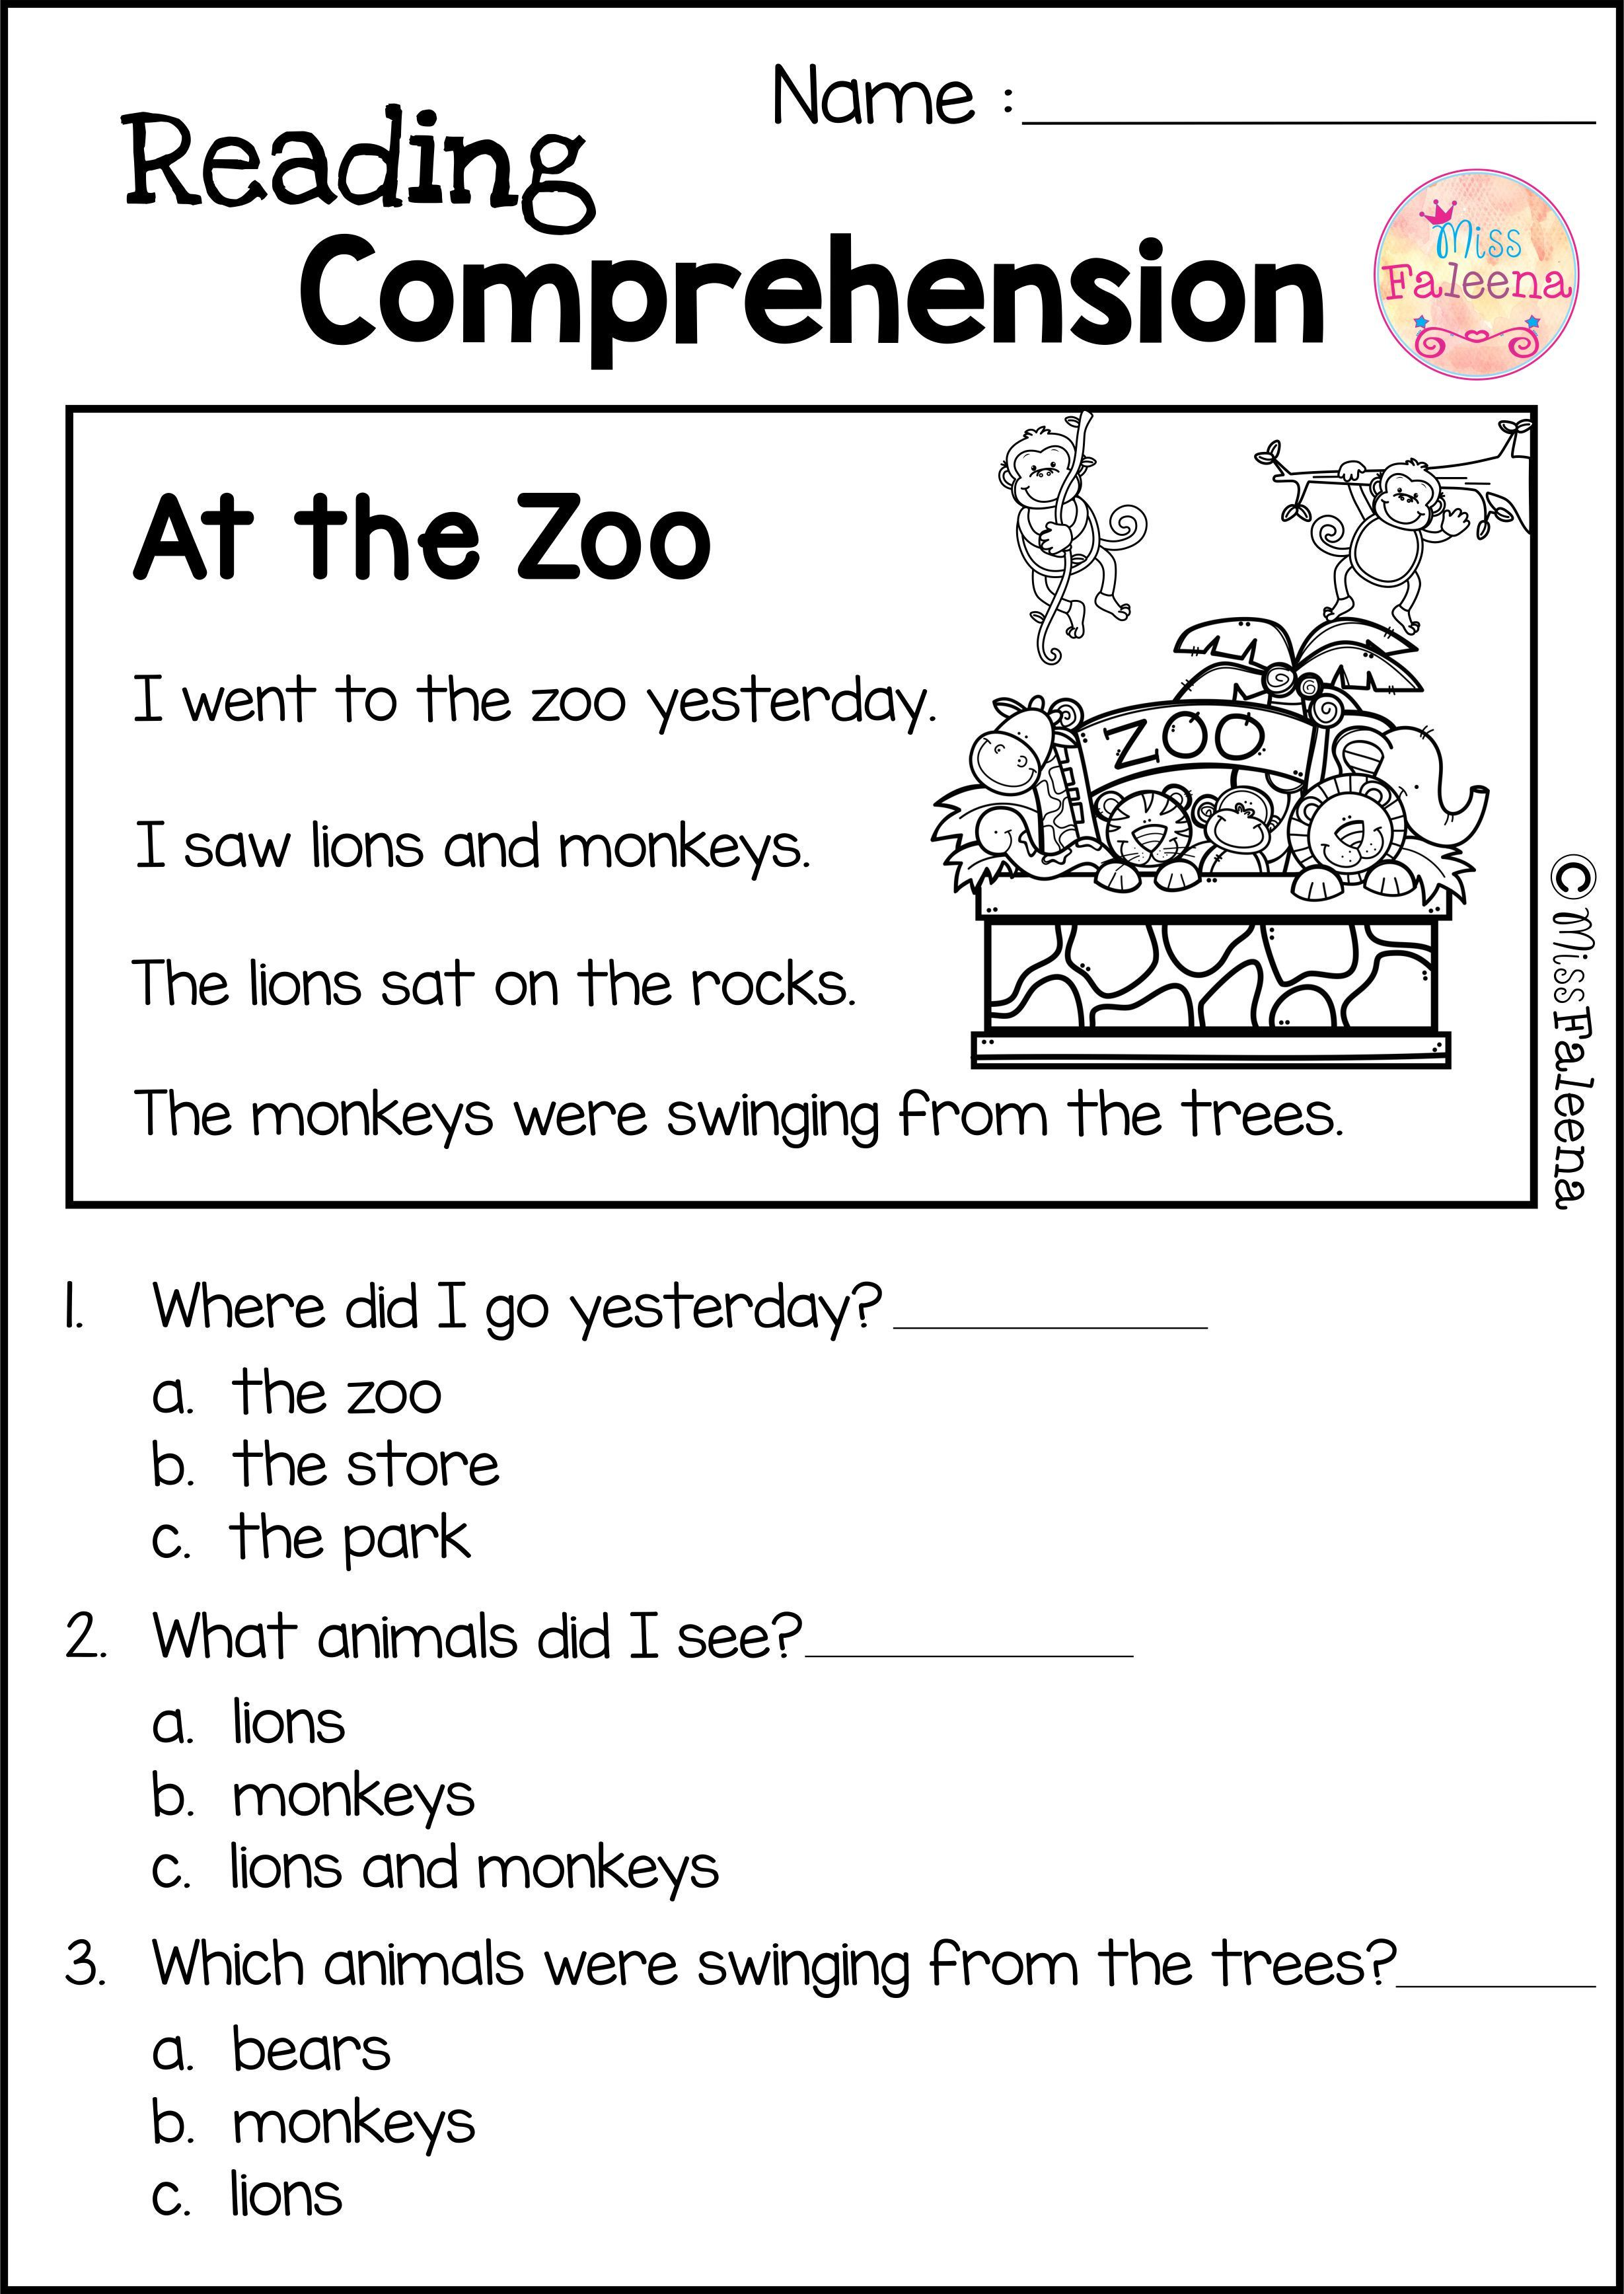 - Reading Comprehension Set 2 Reading Comprehension Worksheets